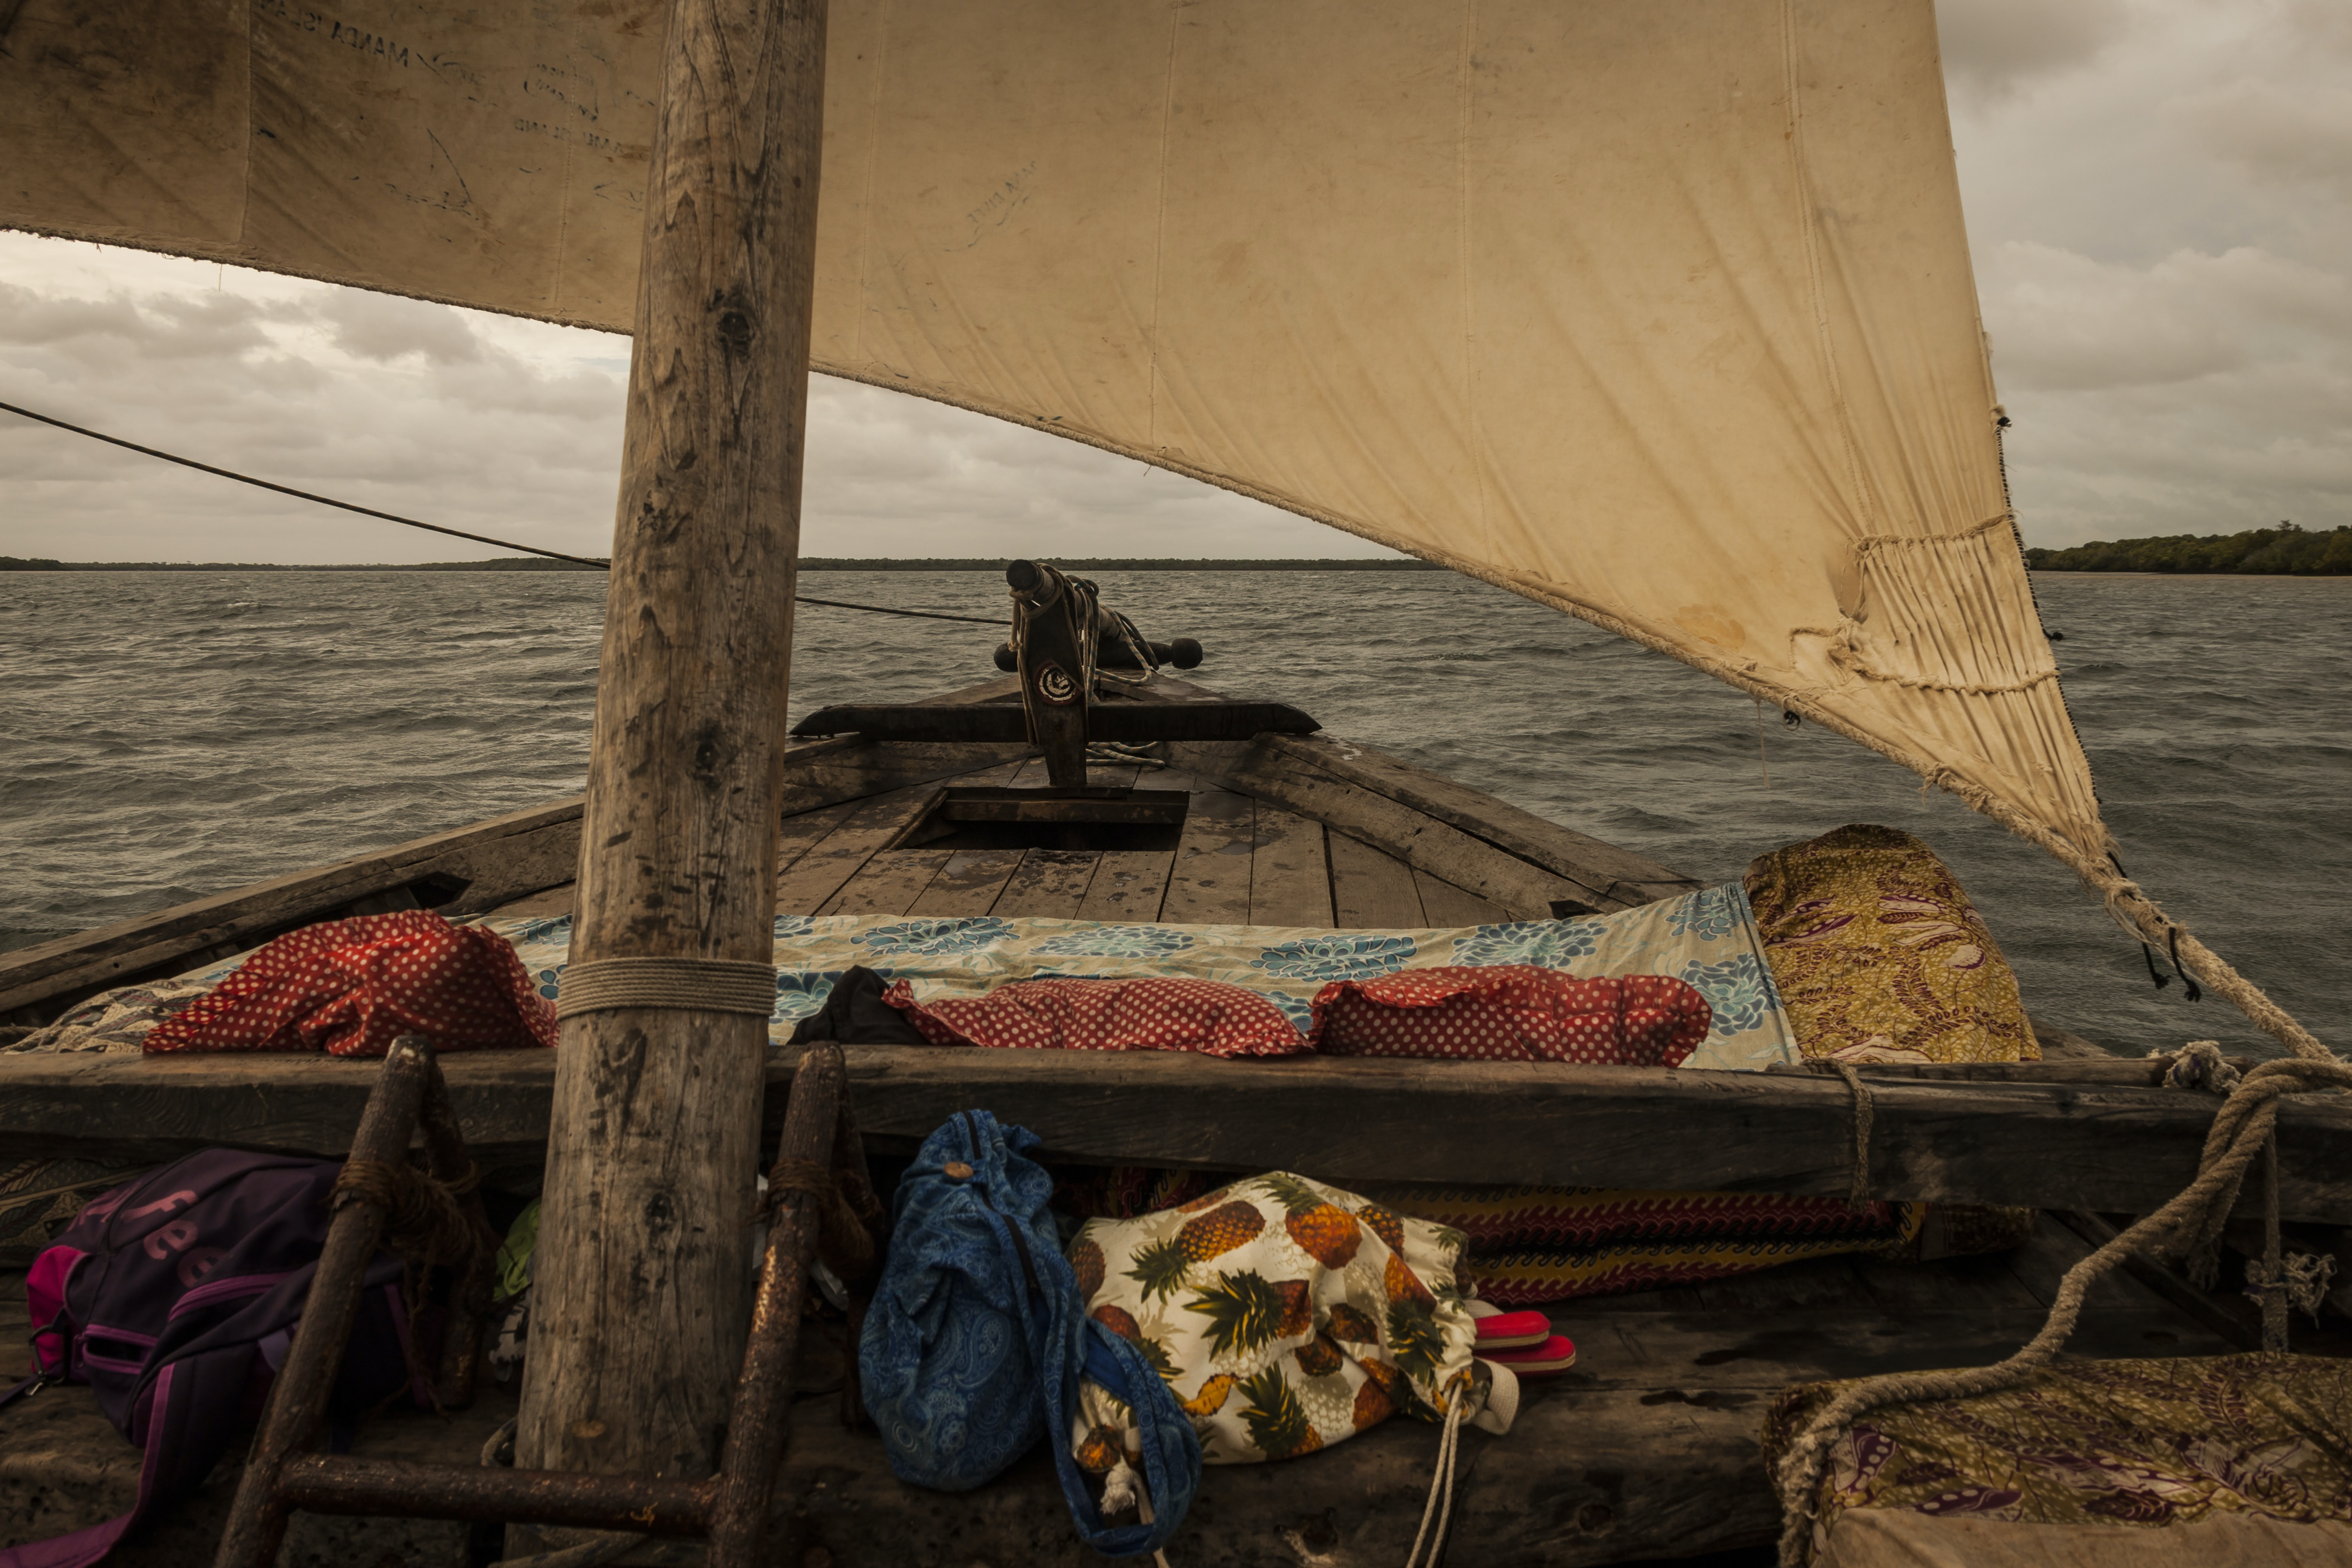 A pineapple tote bag and colorful shet on a sailboat deck in Lamu